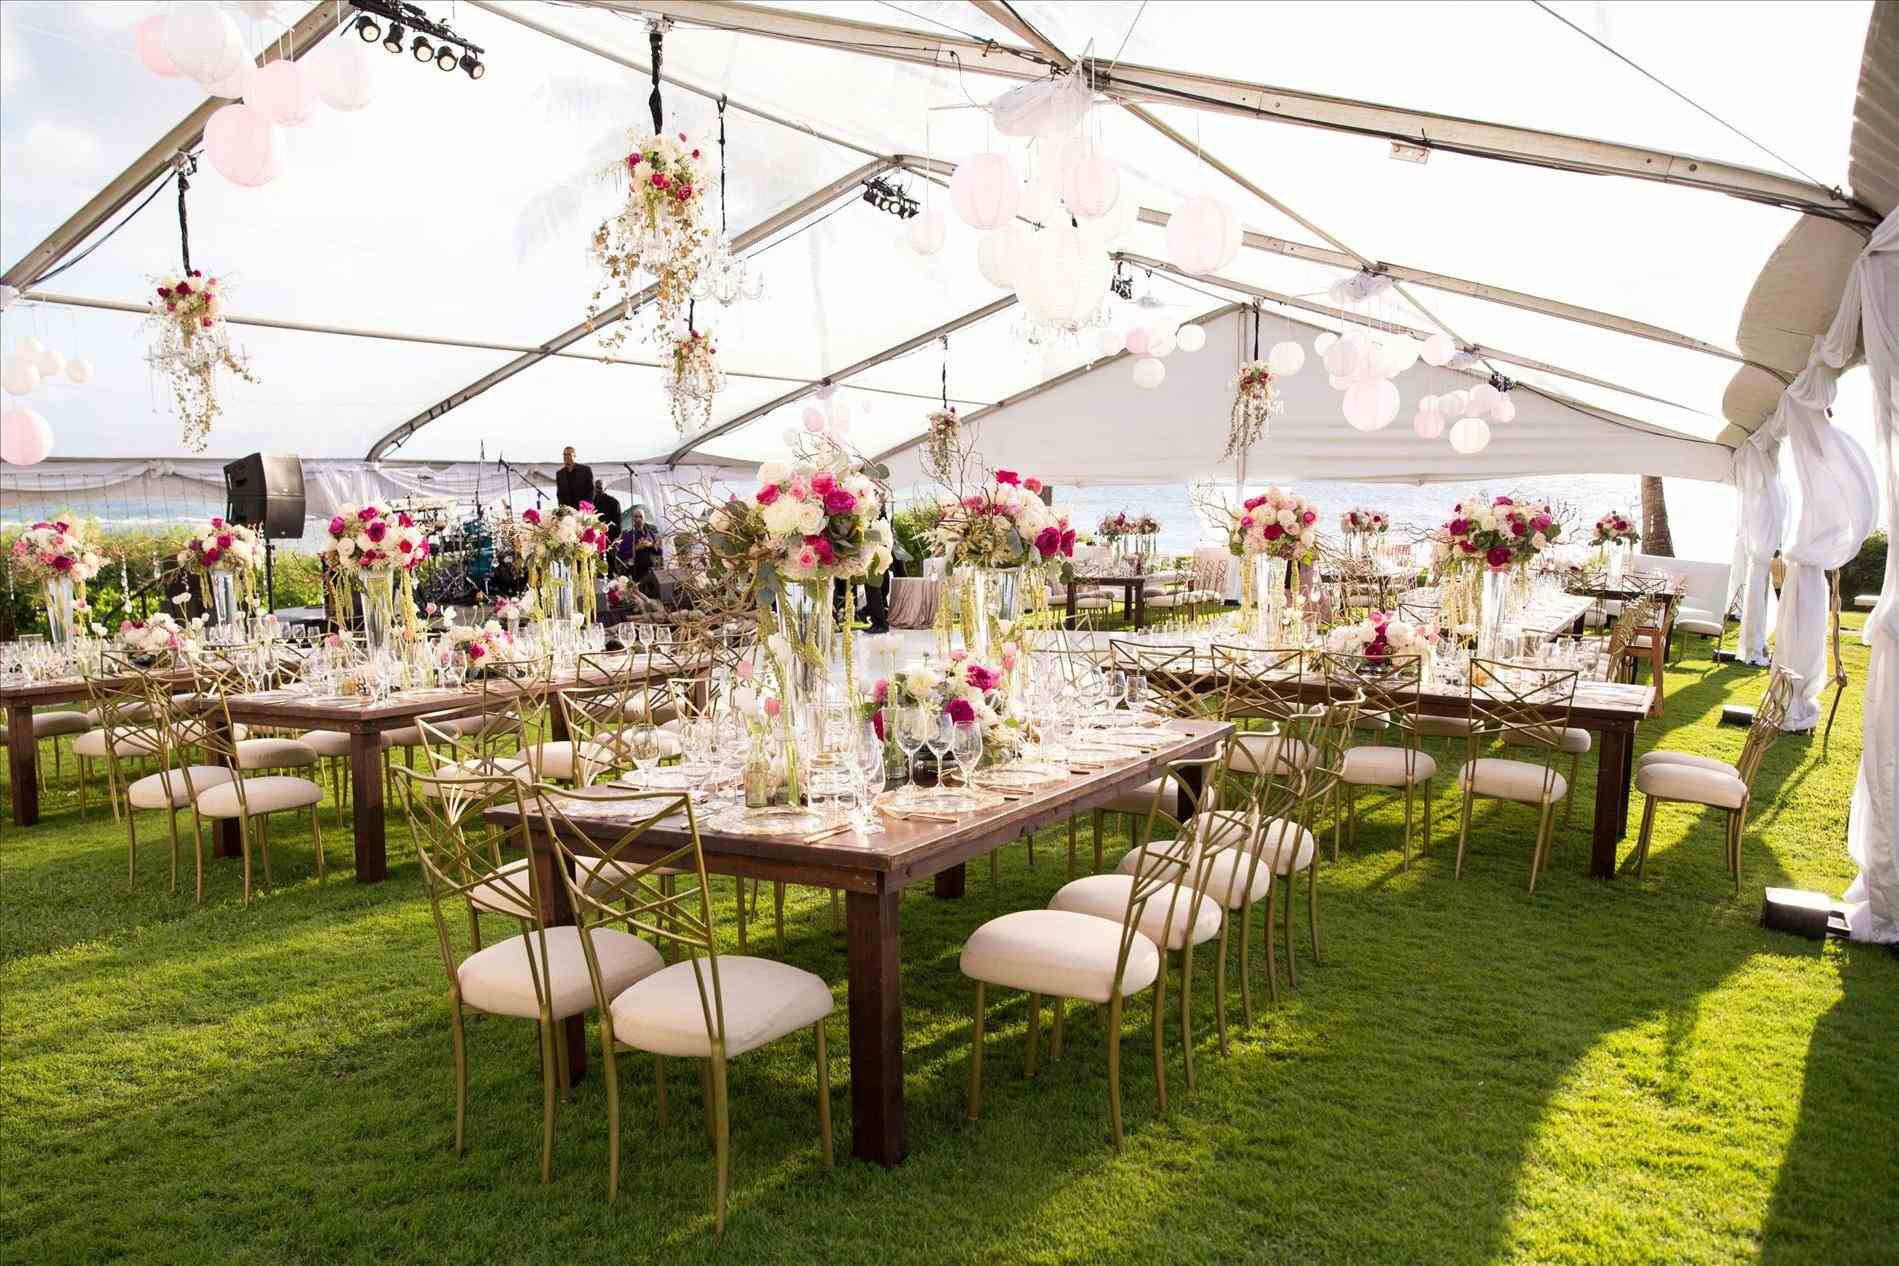 Backyard Tent Wedding Ideas Tent Decor Wedding Simple Fresh Wedding in 11 Smart Tricks of How to Build Backyard Tent Ideas